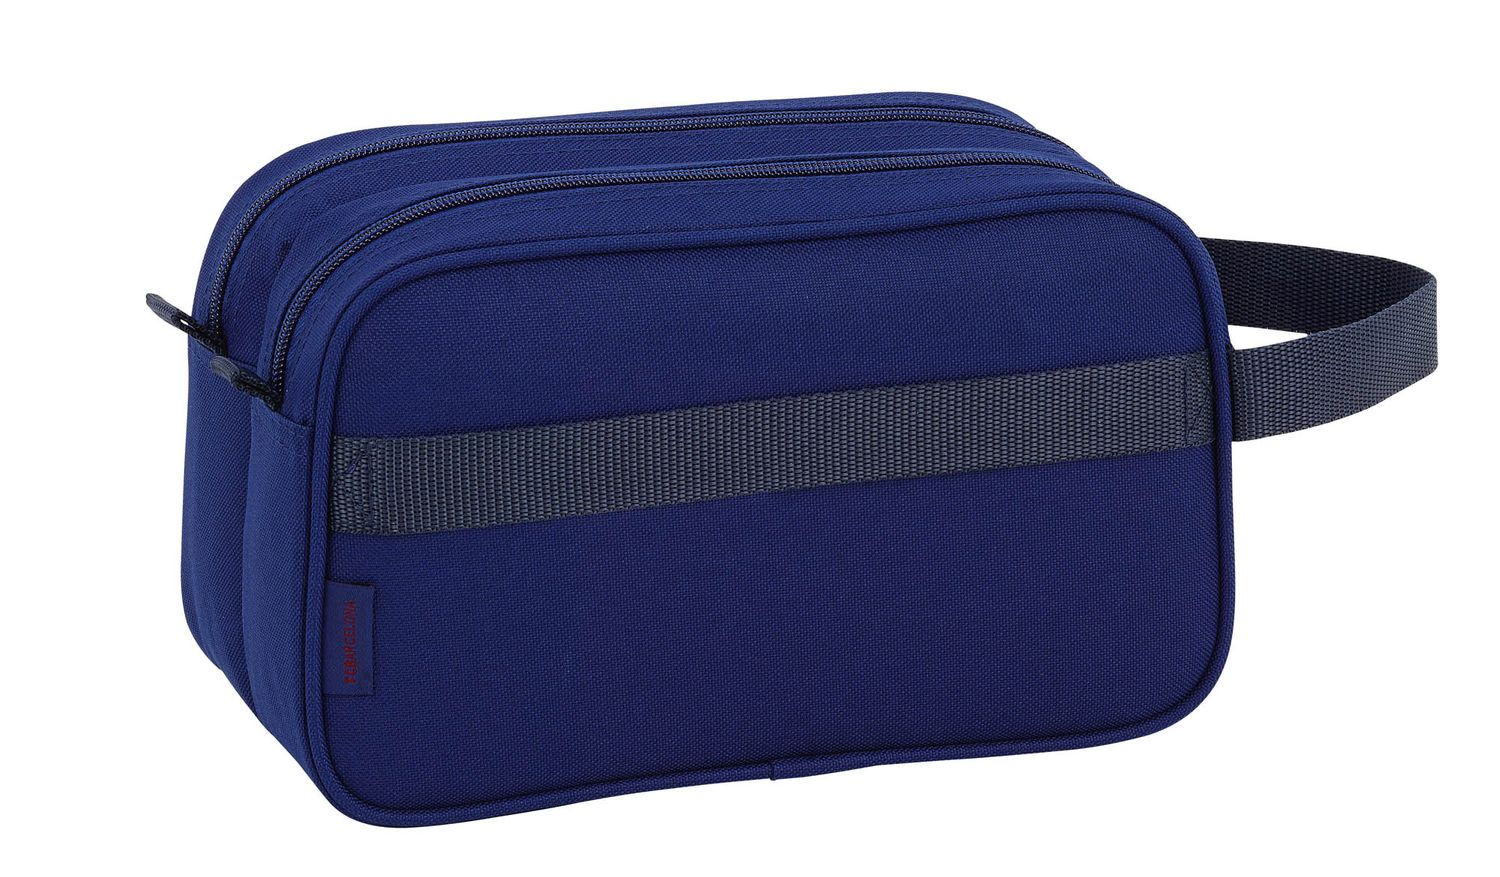 FC Barcelona Wash Travel Bag Double – image 2